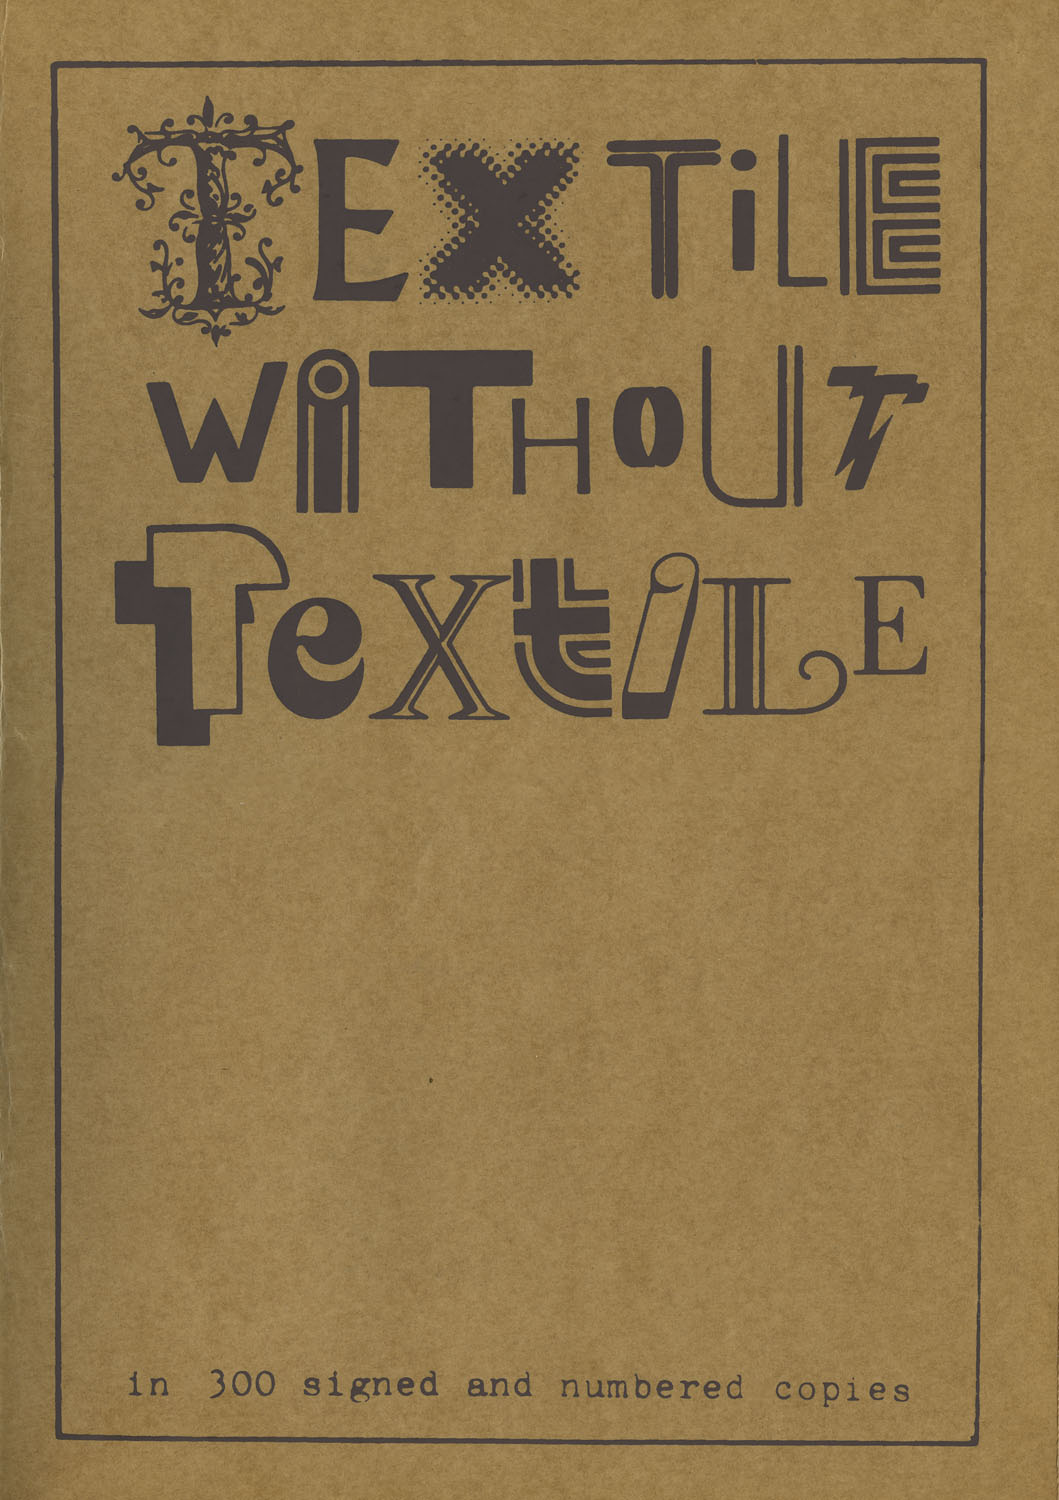 Silk screened cover of the assembling TEXTILE WITHOUT TEXTILE